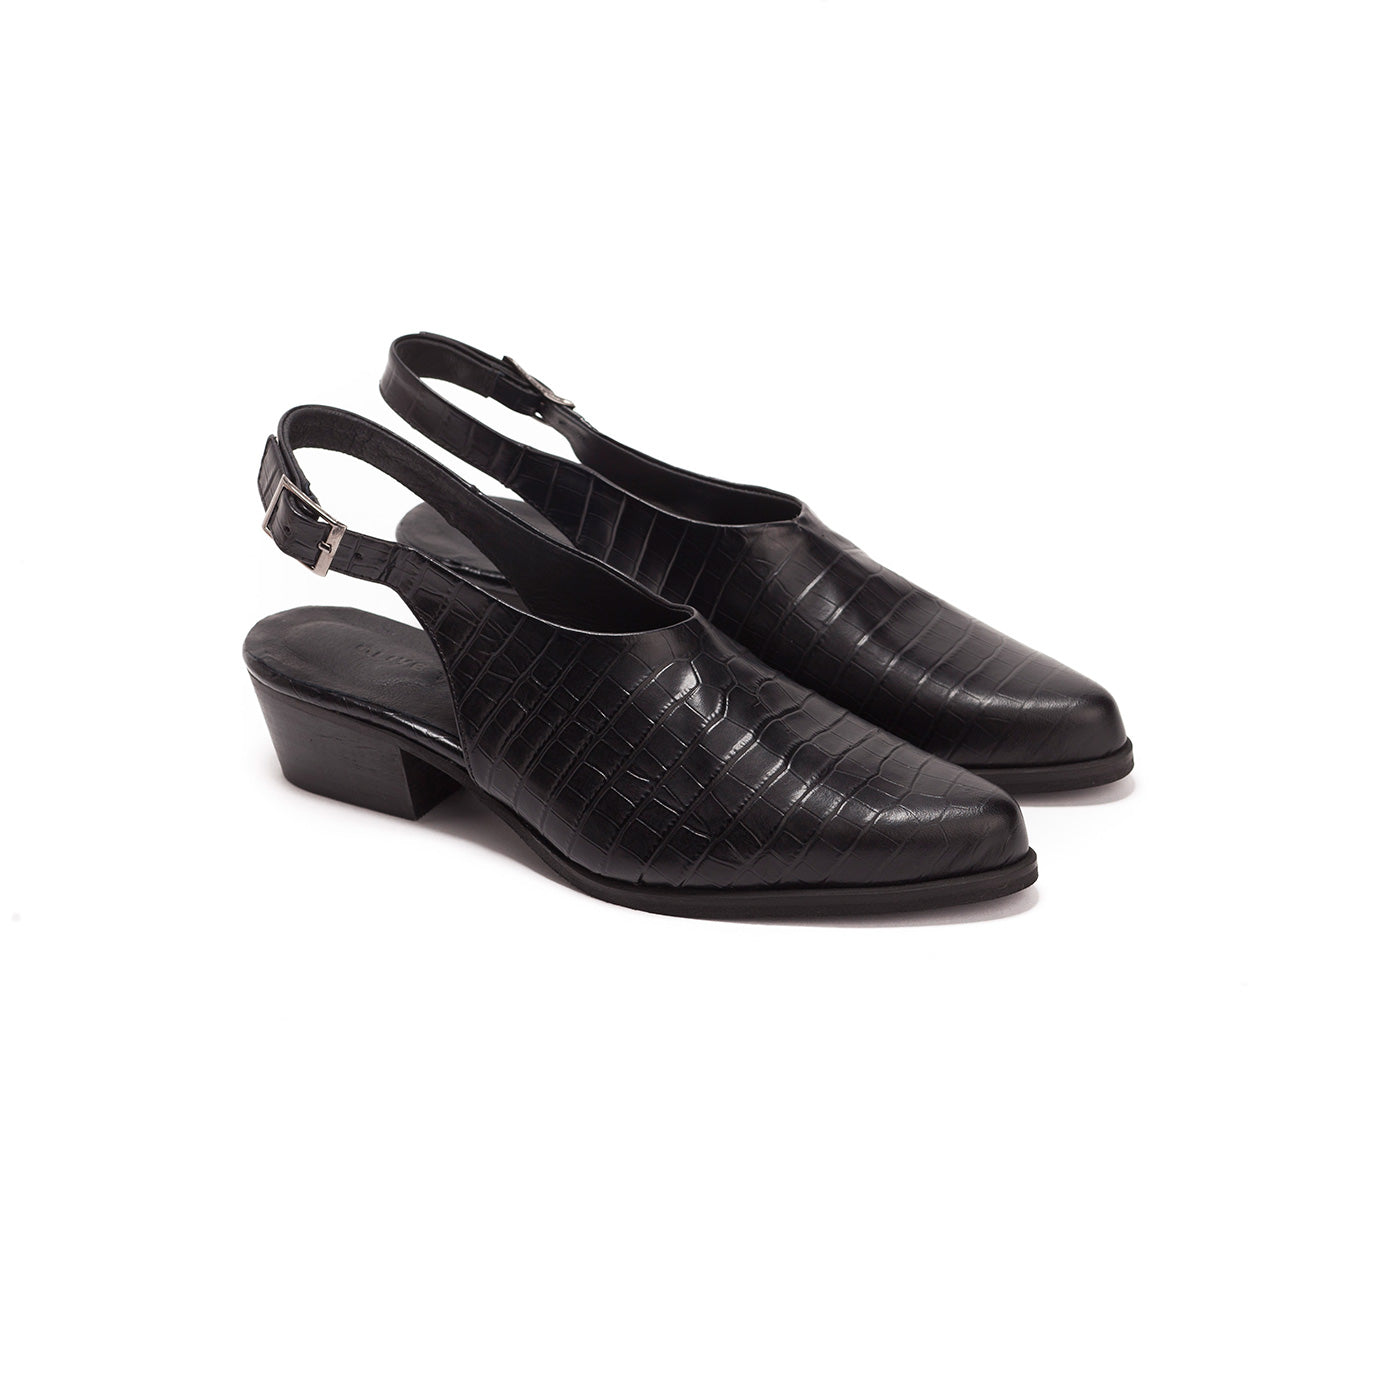 Anu - Black Leather Slingbacks